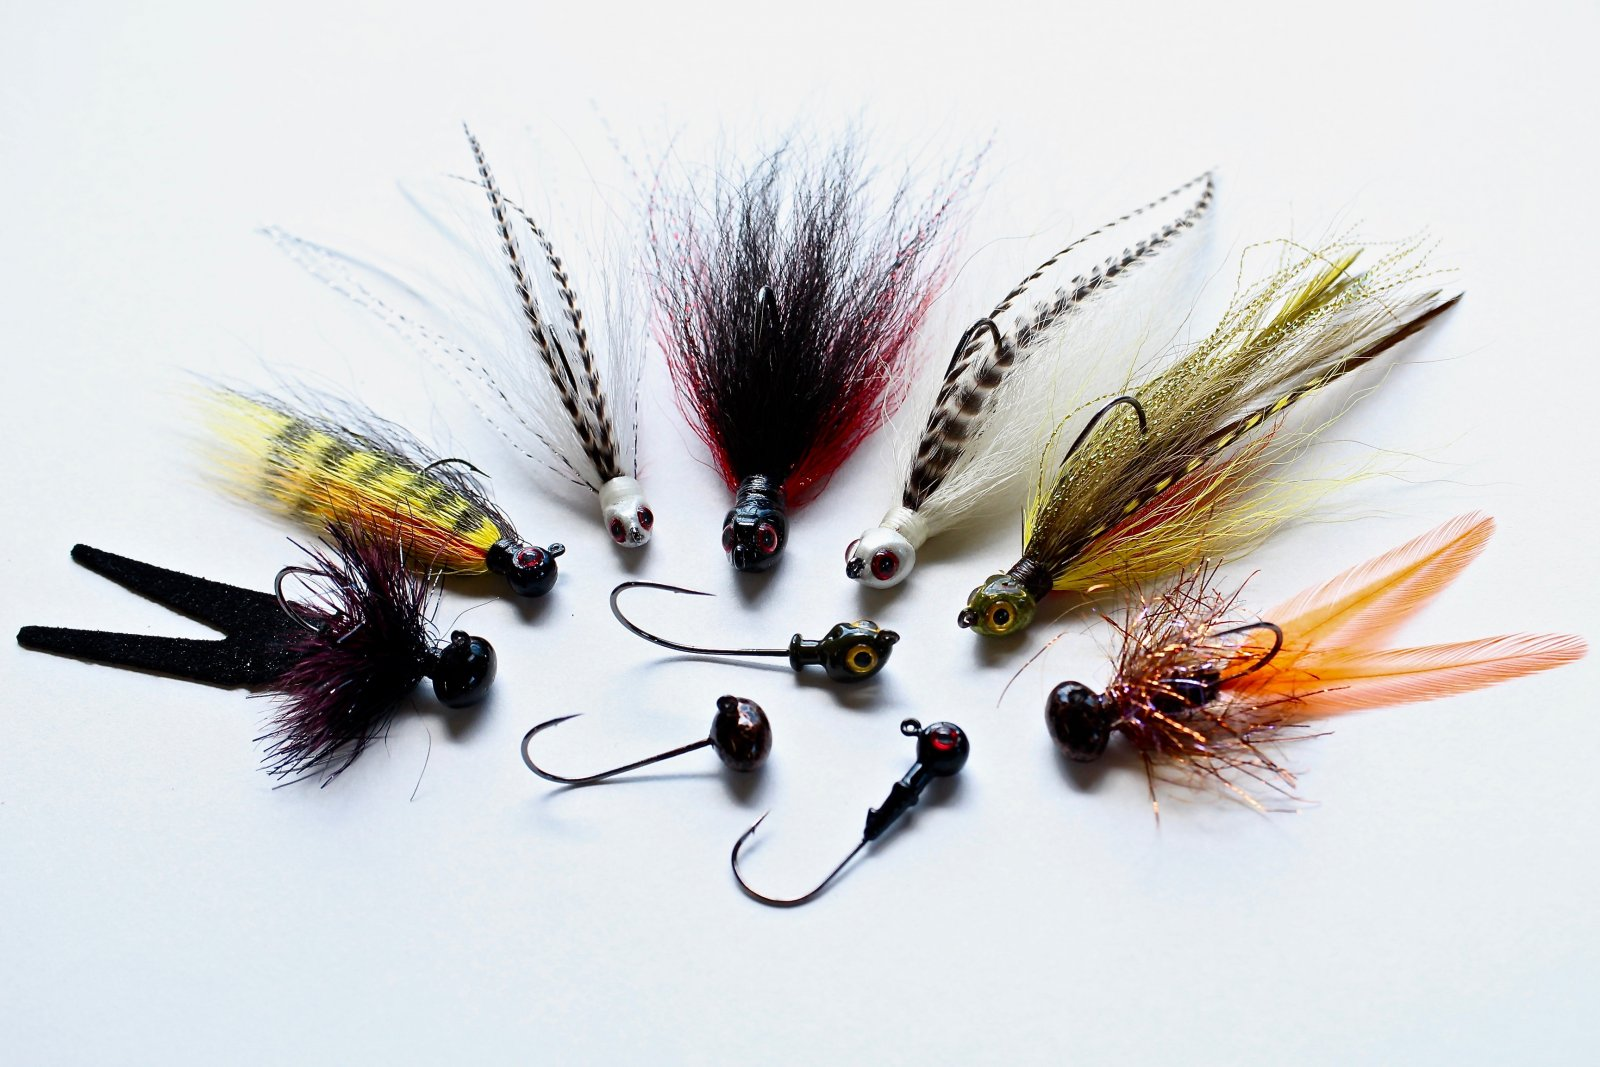 An Assortment of Jigs.jpeg